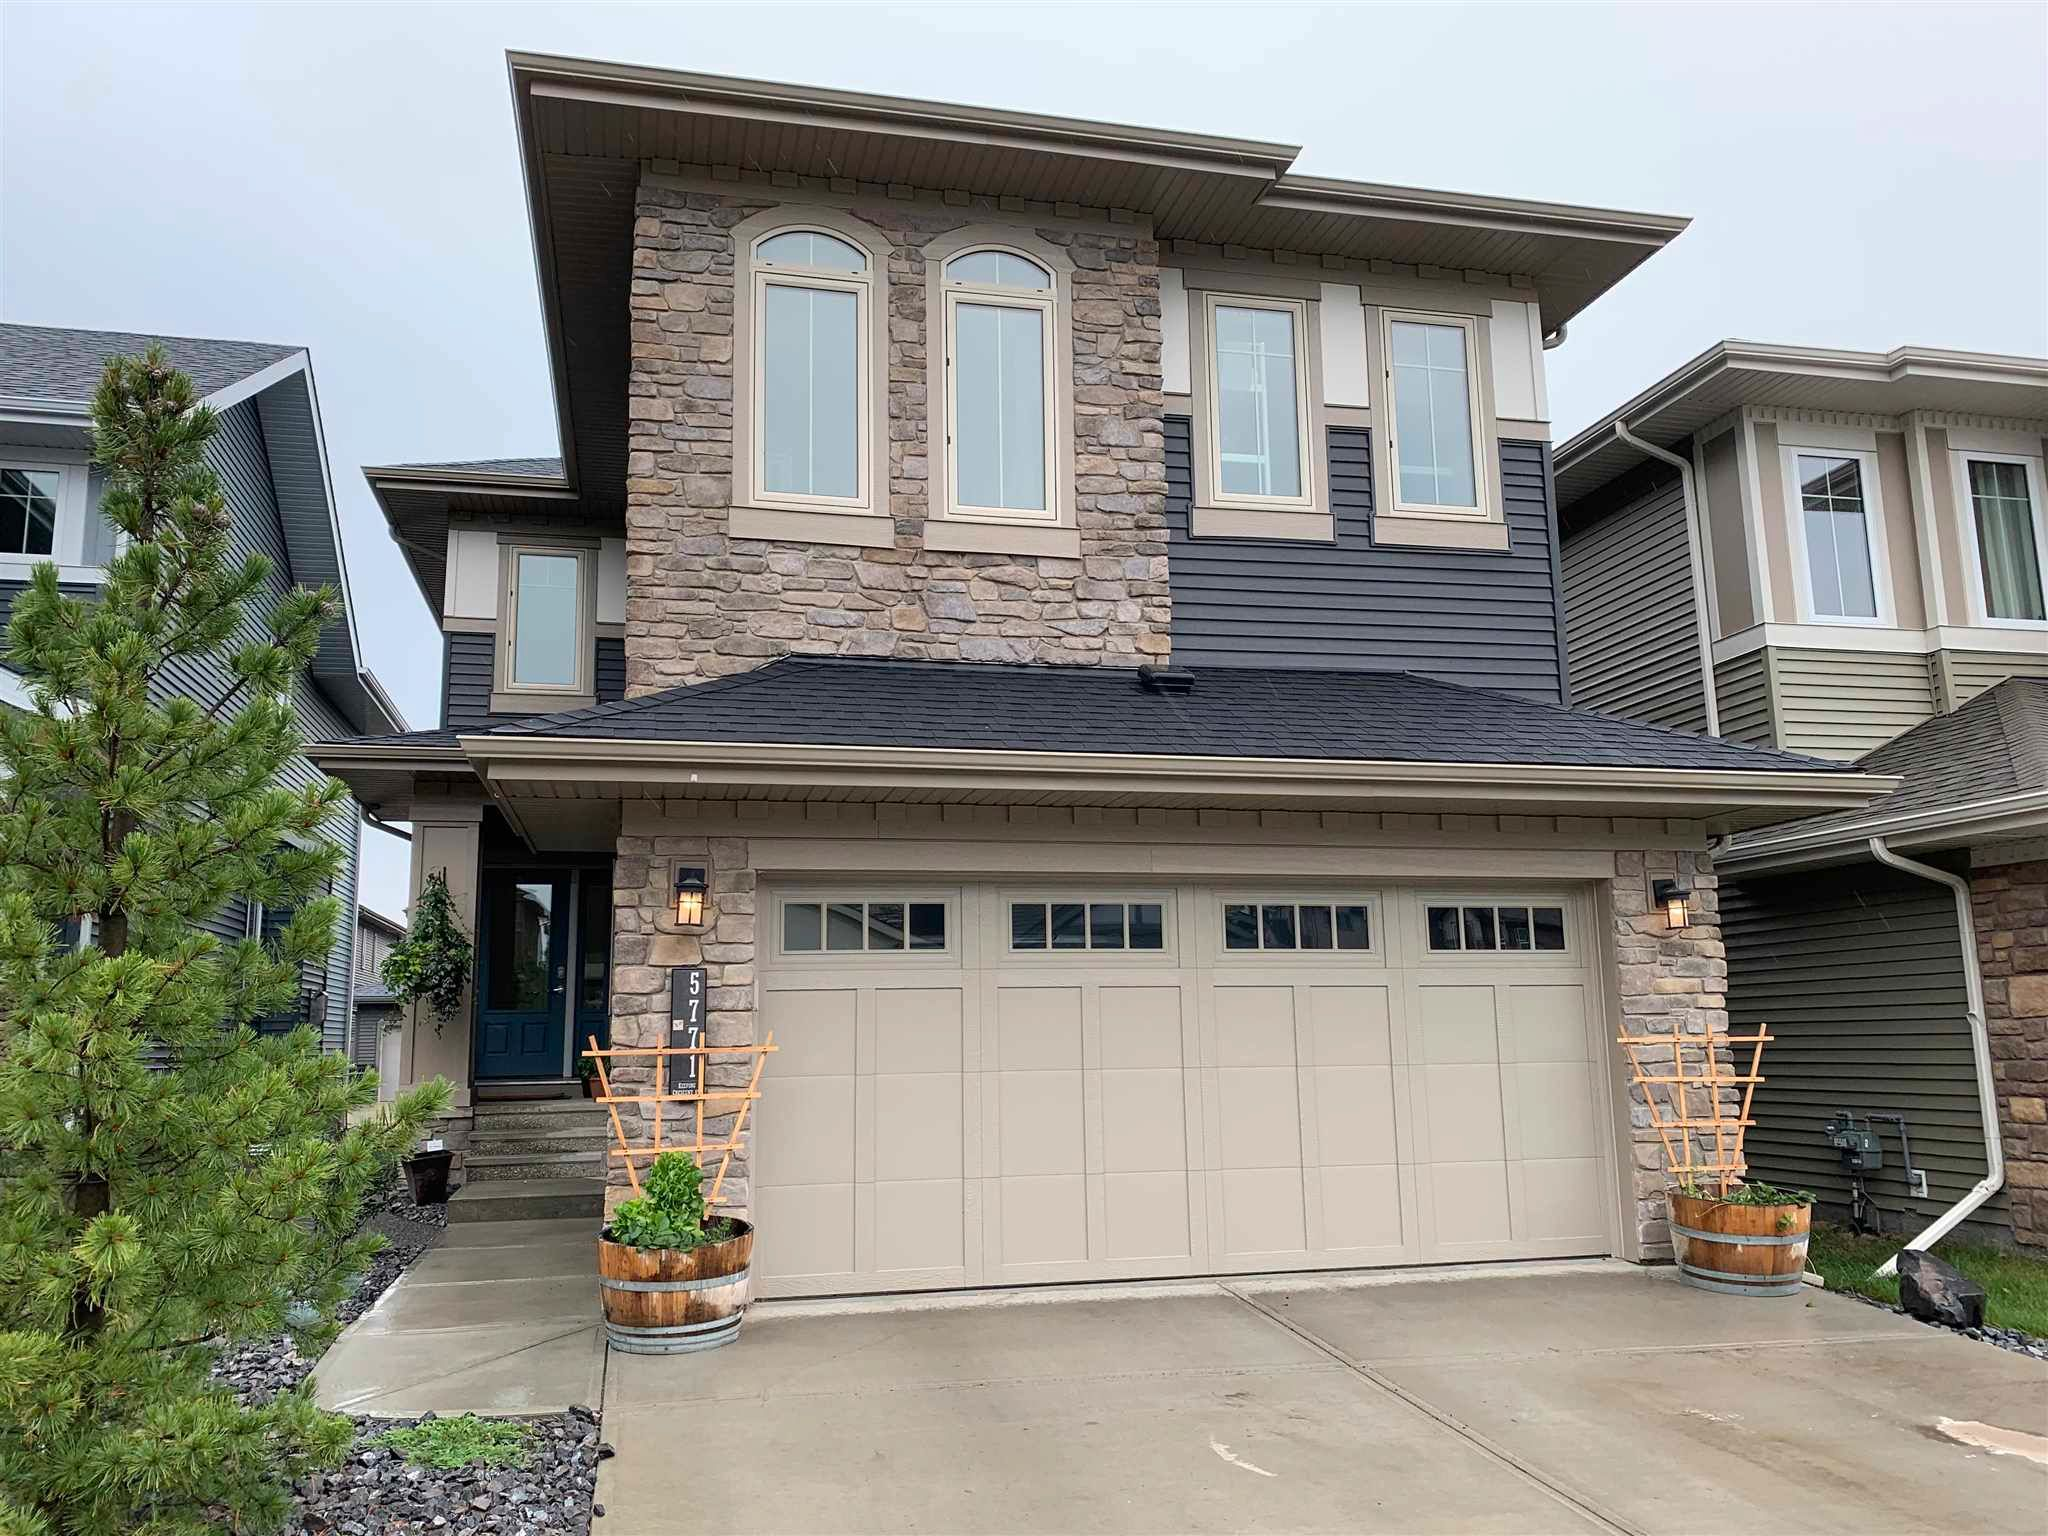 Main Photo: 5771 KEEPING Crescent in Edmonton: Zone 56 House for sale : MLS®# E4255642